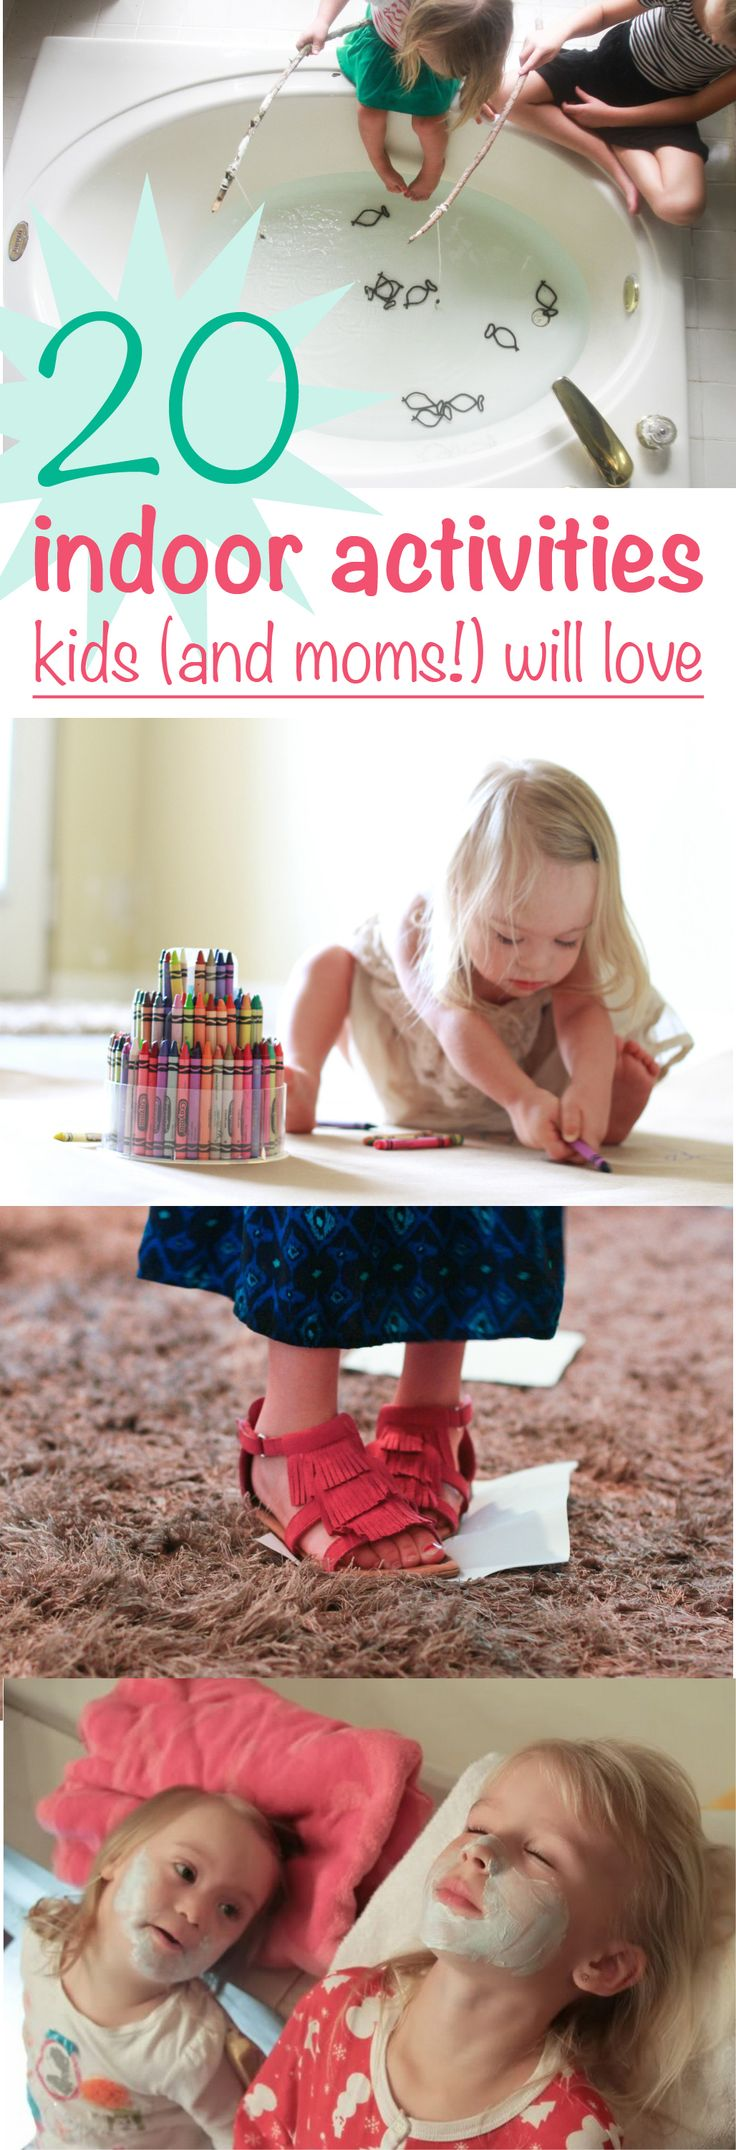 20 indoor activities for these cold winter days the kids will love, and you will too! http://www.ehow.com/ehow-mom/blog/20-indoor-activities-kids-and-moms-will-love-no-gadgets-required/?utm_source=pinterest.com&utm_medium=referral&utm_content=blog&utm_campaign=fanpage